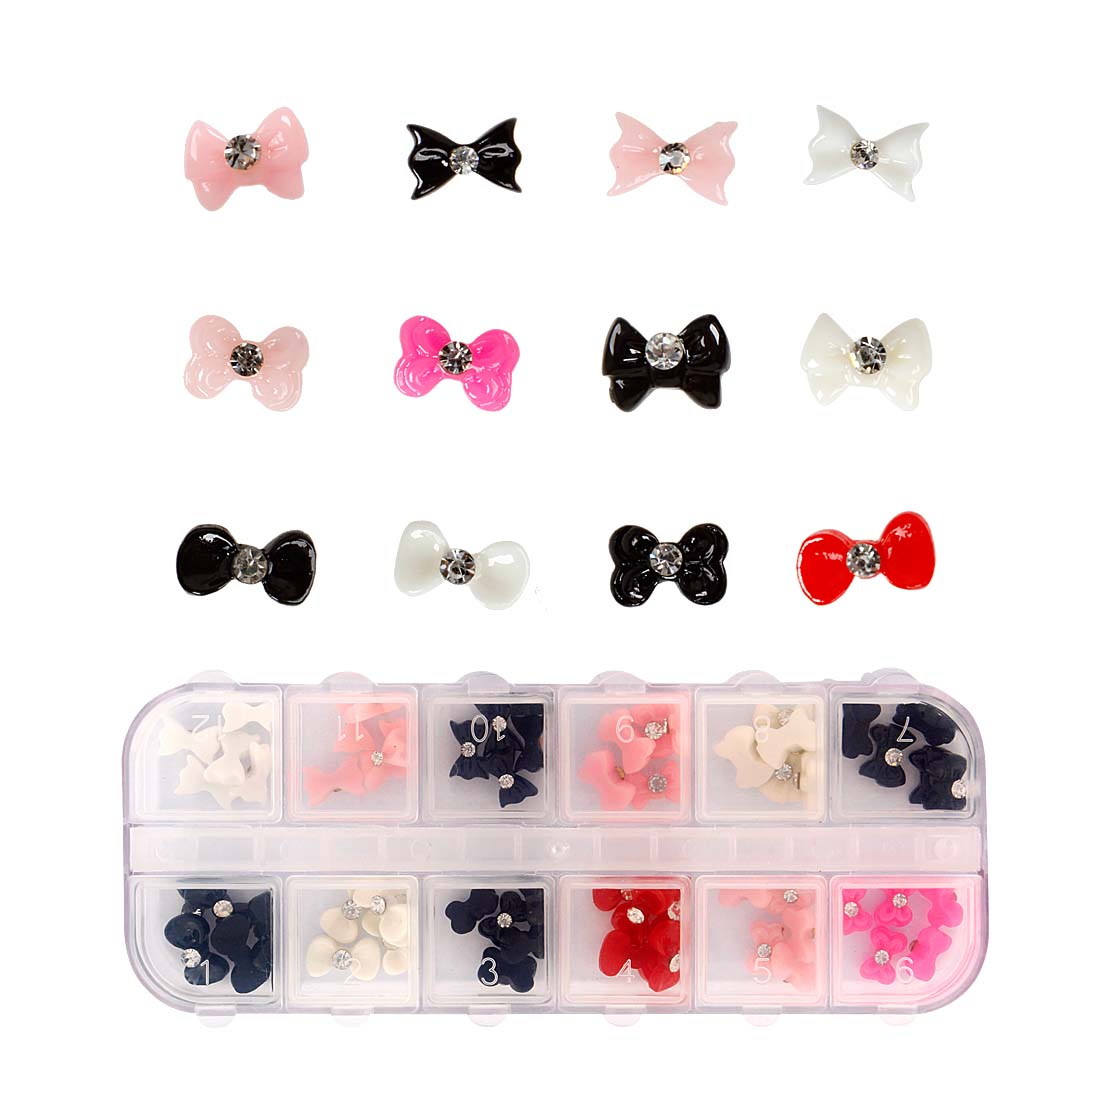 BMC 60pc Mixed Color Acrylic Bows DIY 3D Nail Art Cabochon Stud Decoration Set